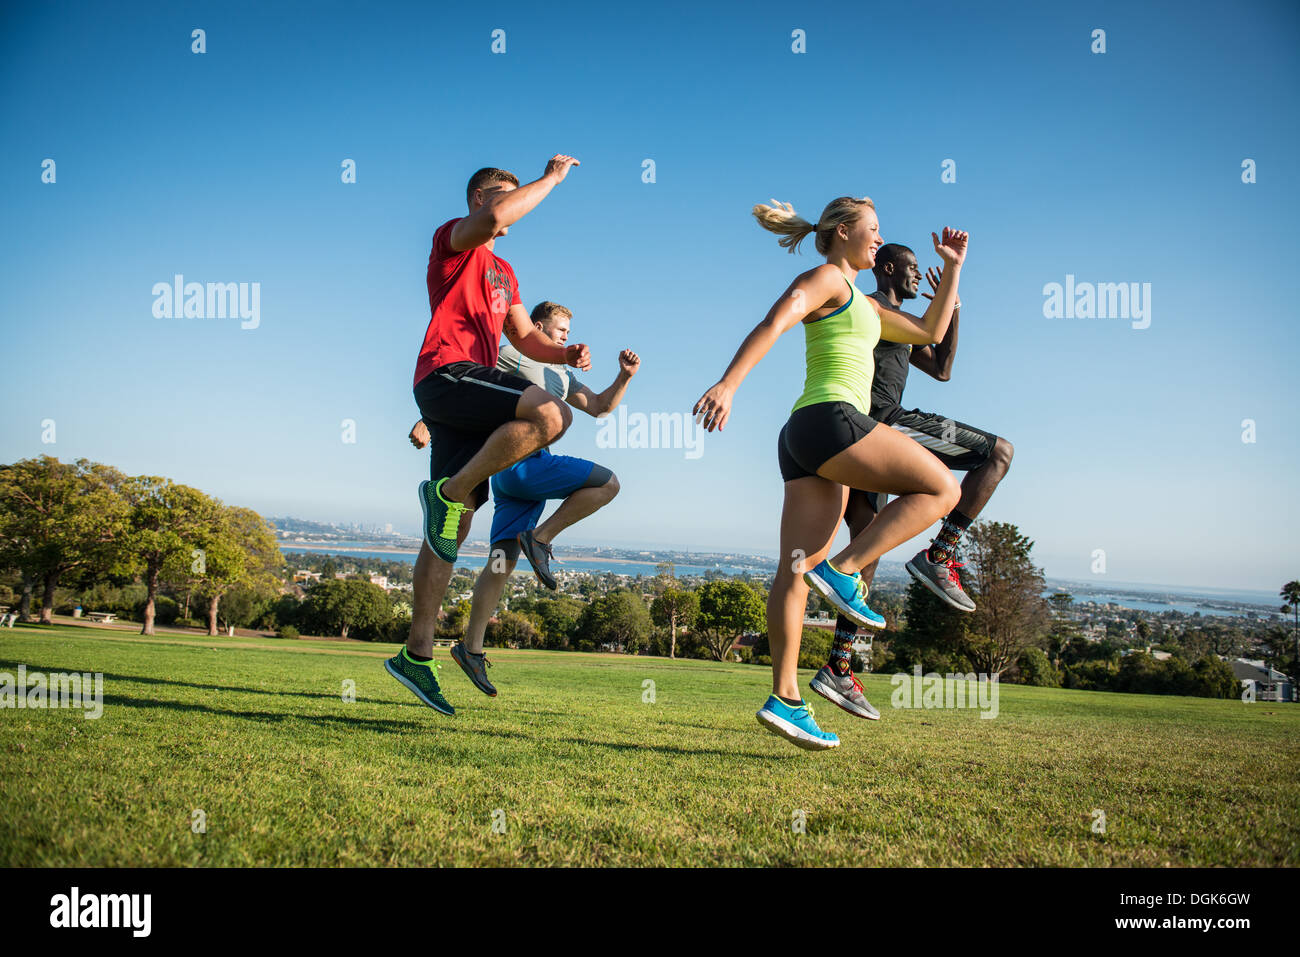 Group of young adults training in field - Stock Image